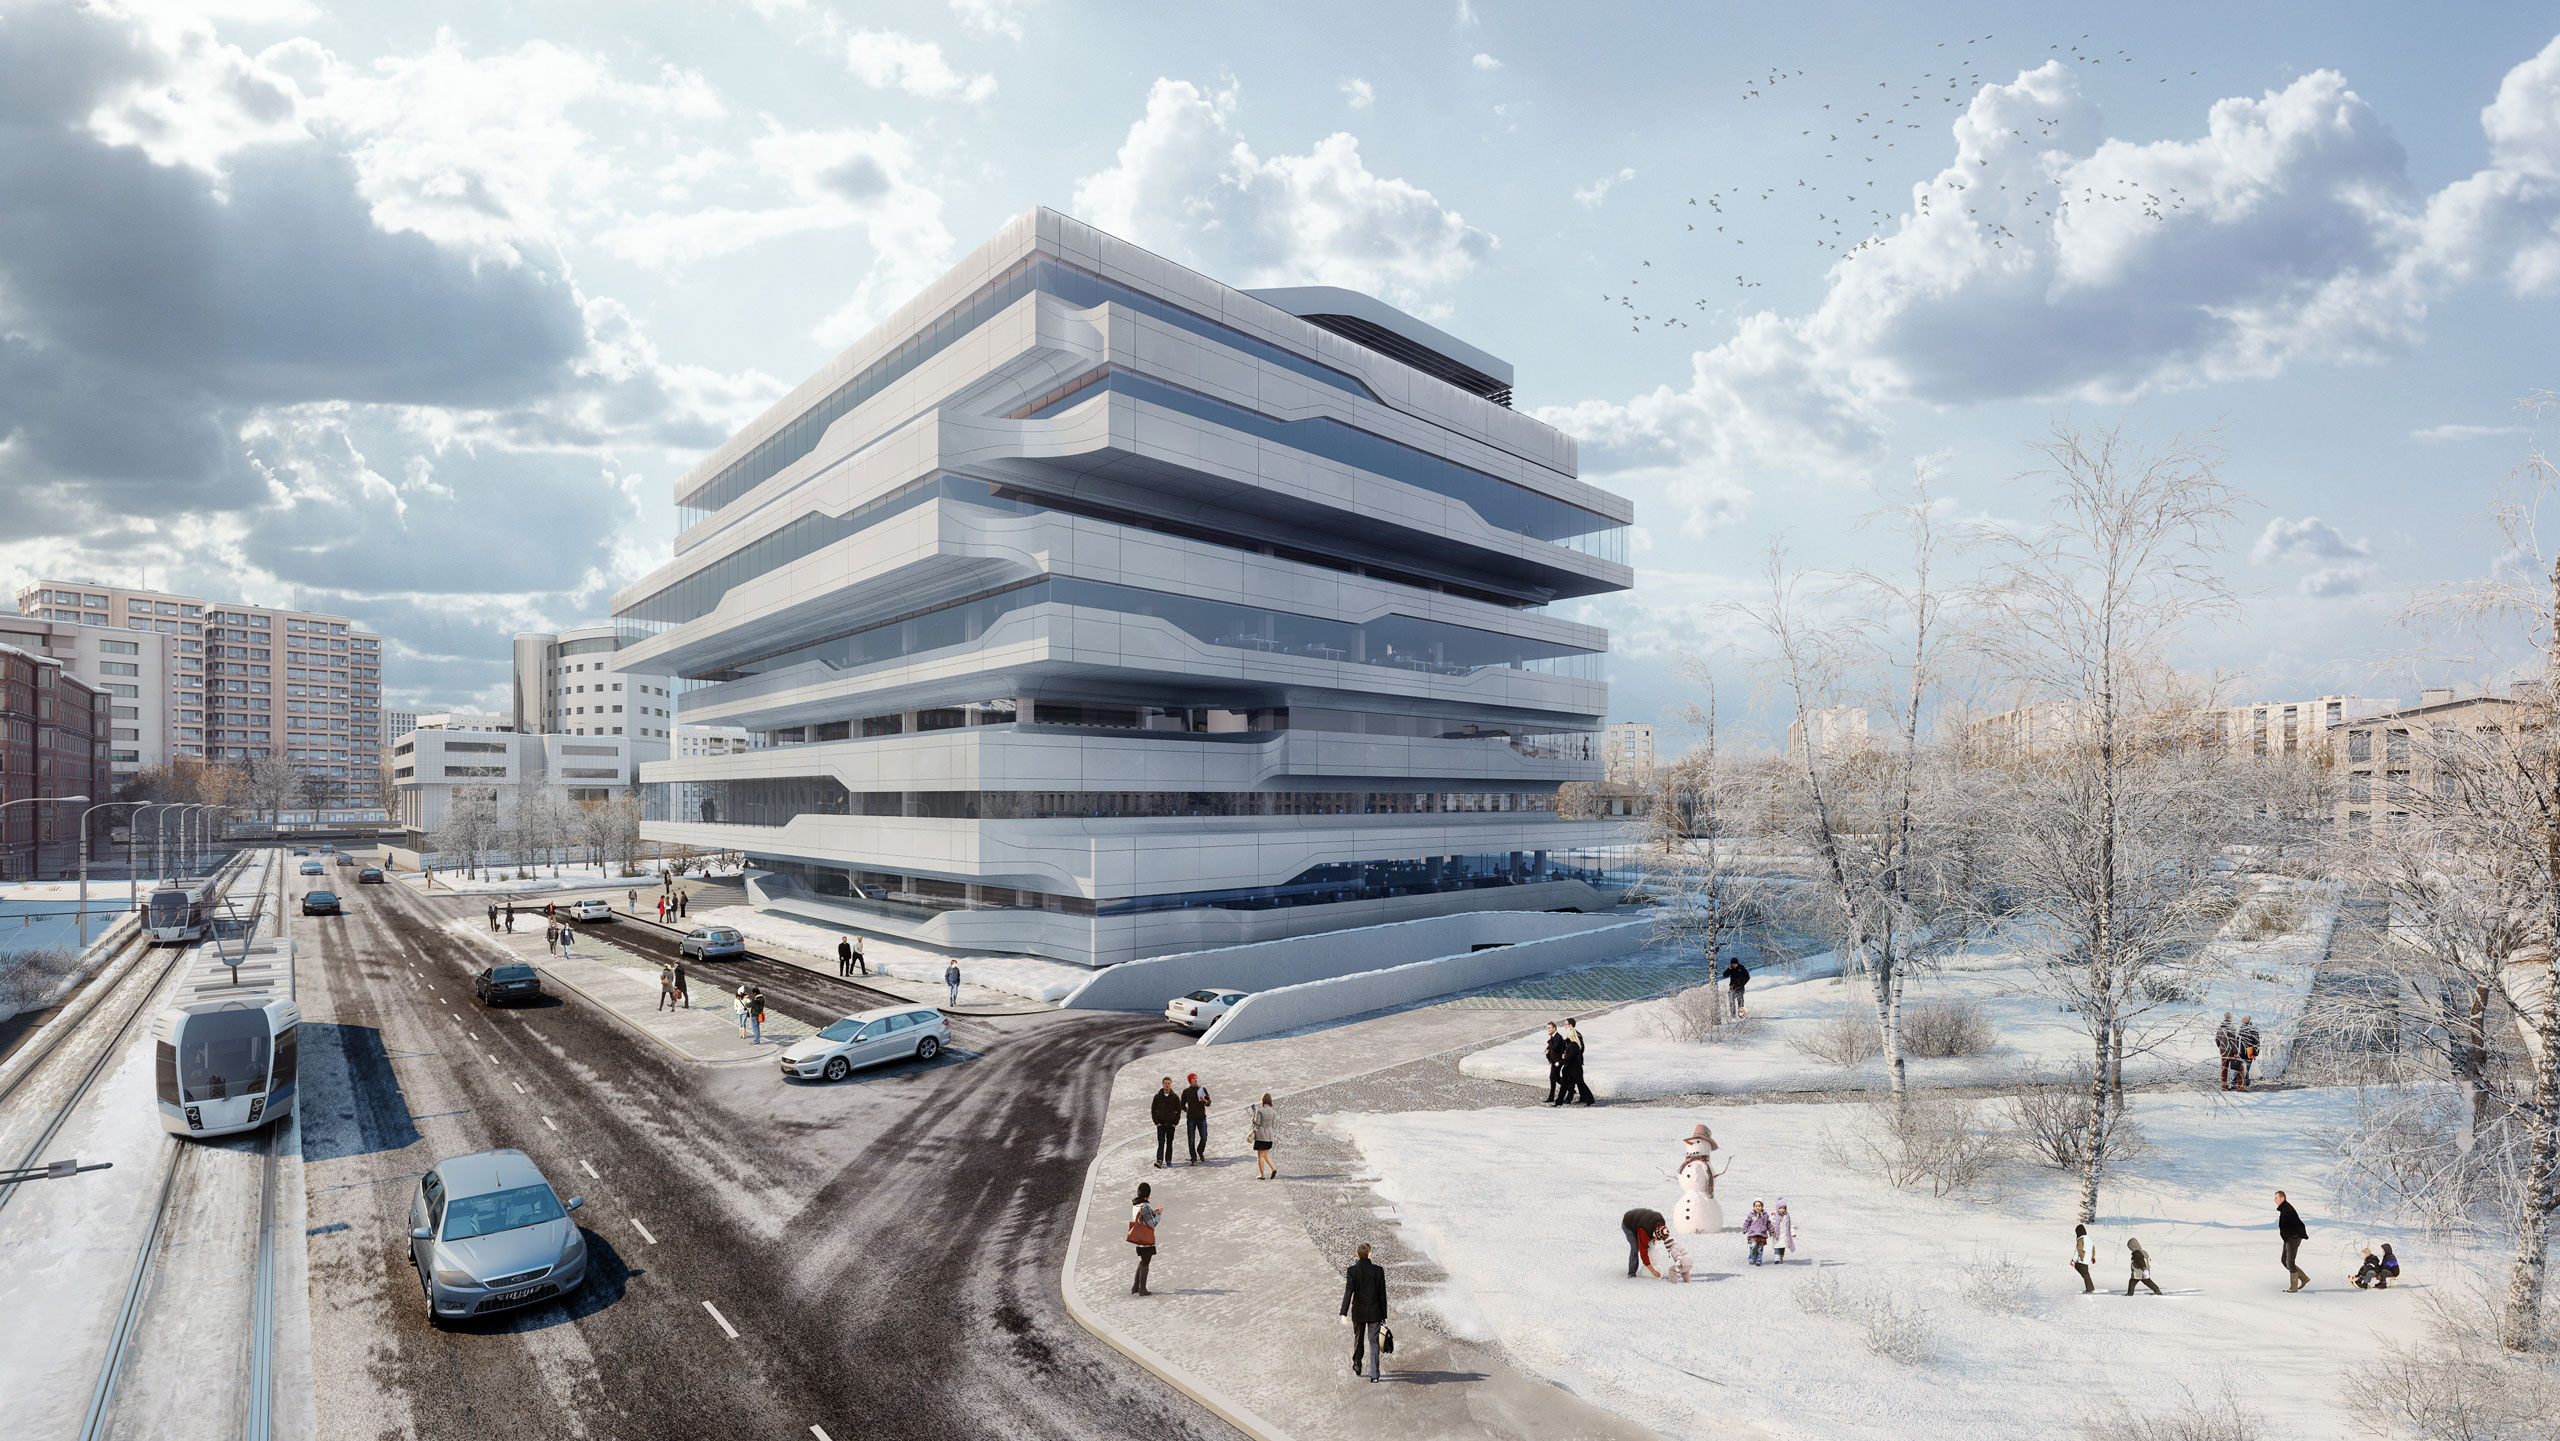 dominion office building in moscow russia by zaha hadid architects yatzer - Zaha Hadid Architect Buildings